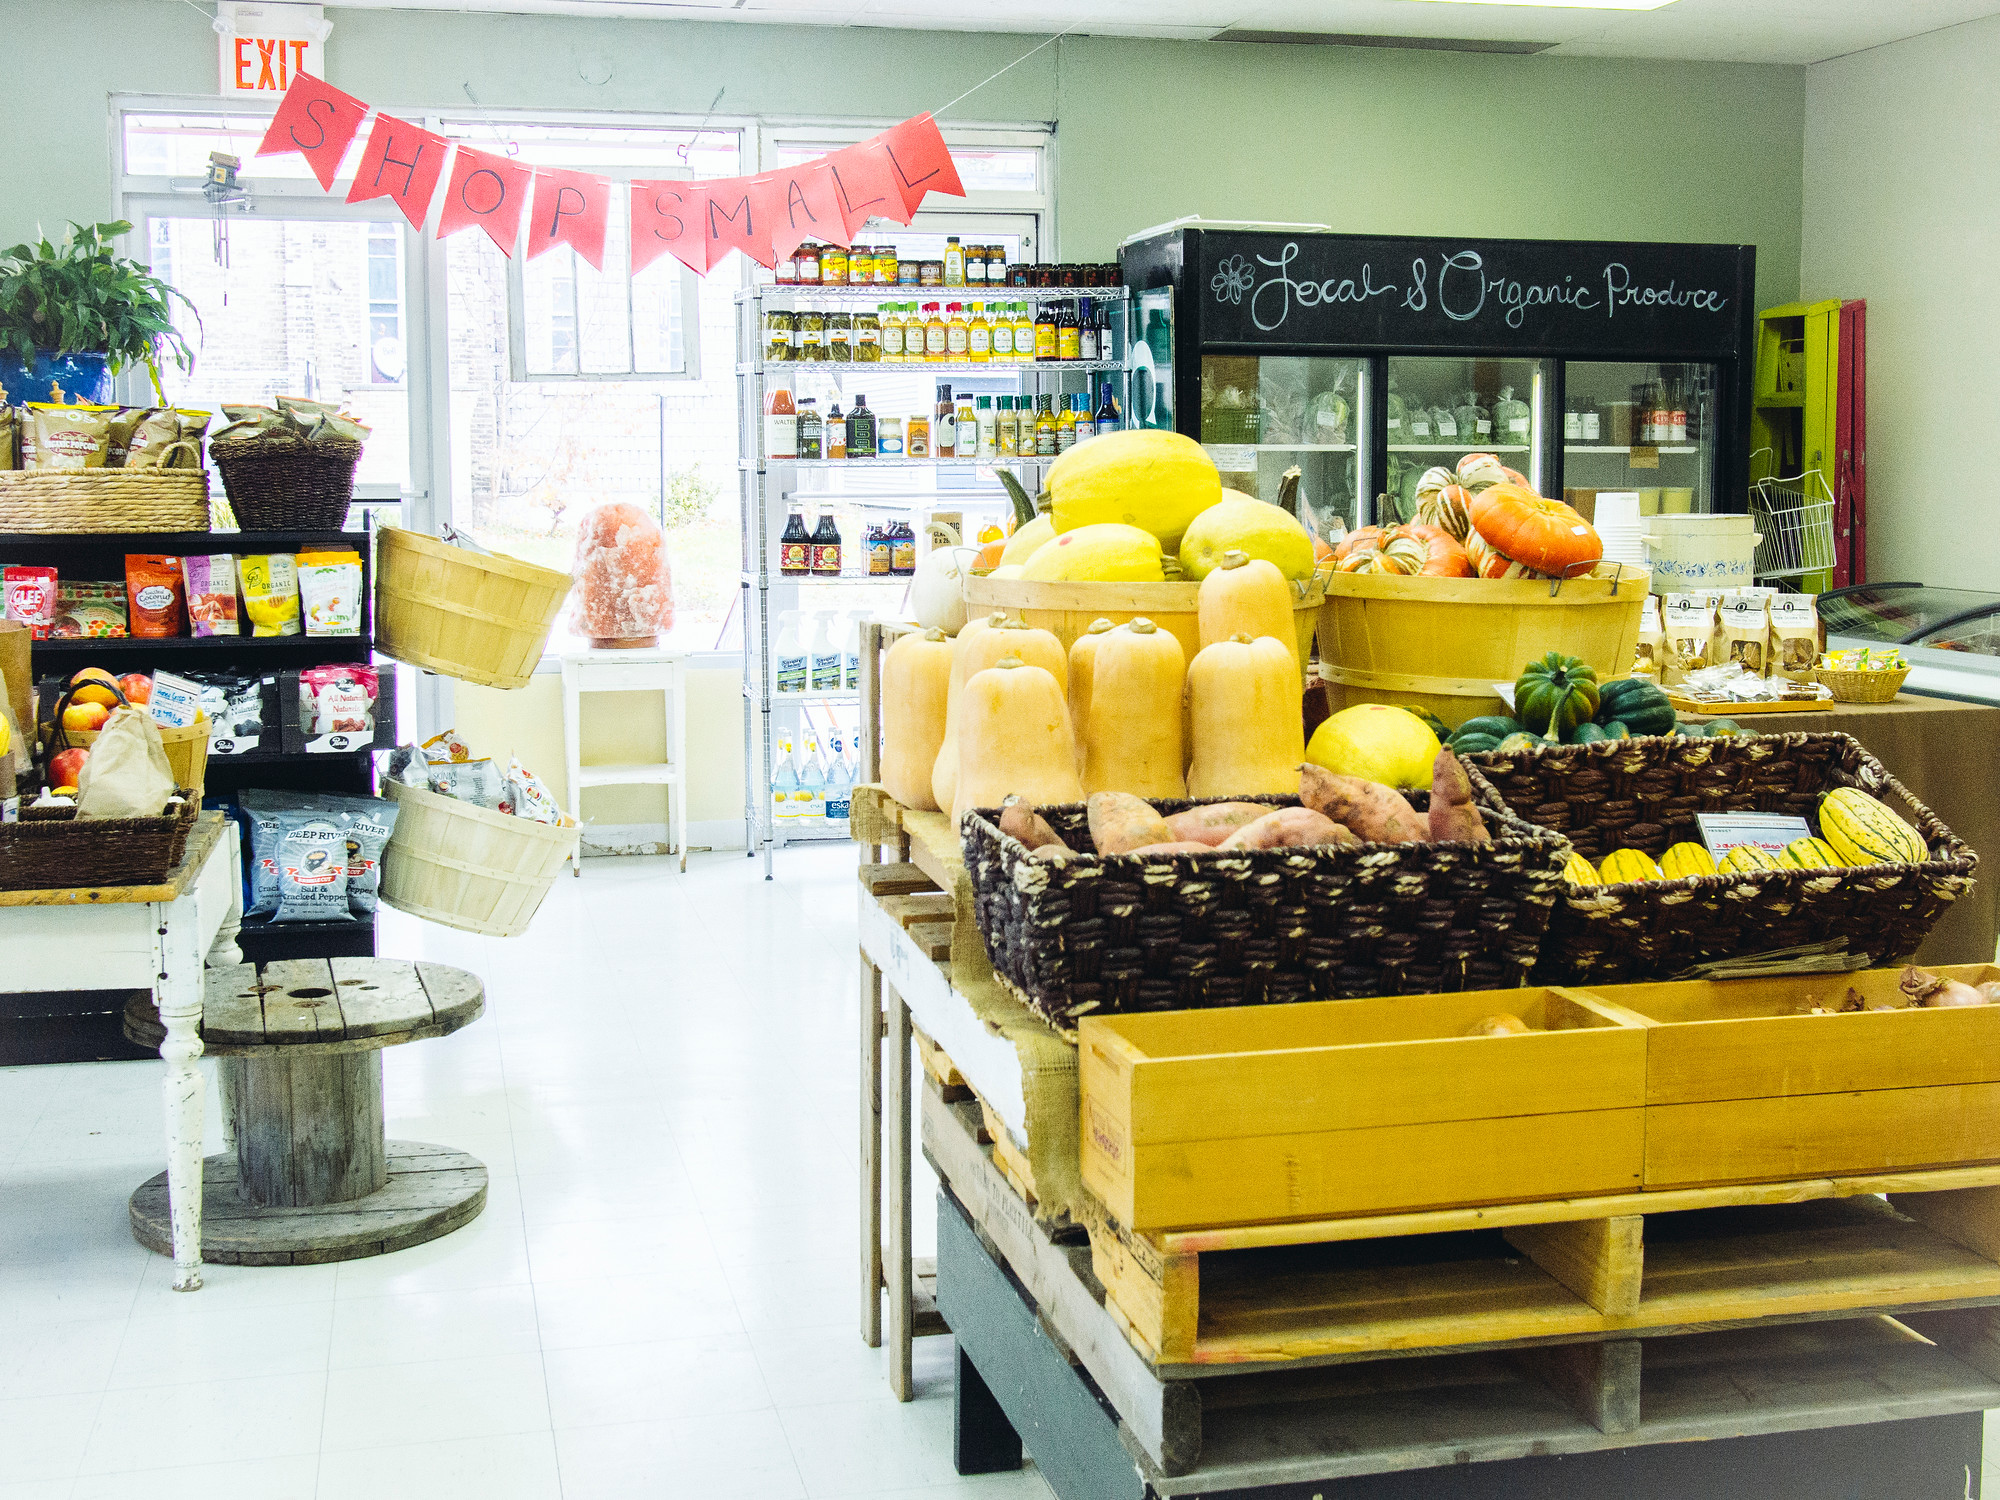 Cowan's Community Fresh in Listowel Perth County offers organic produce, prepared meals and local beef.